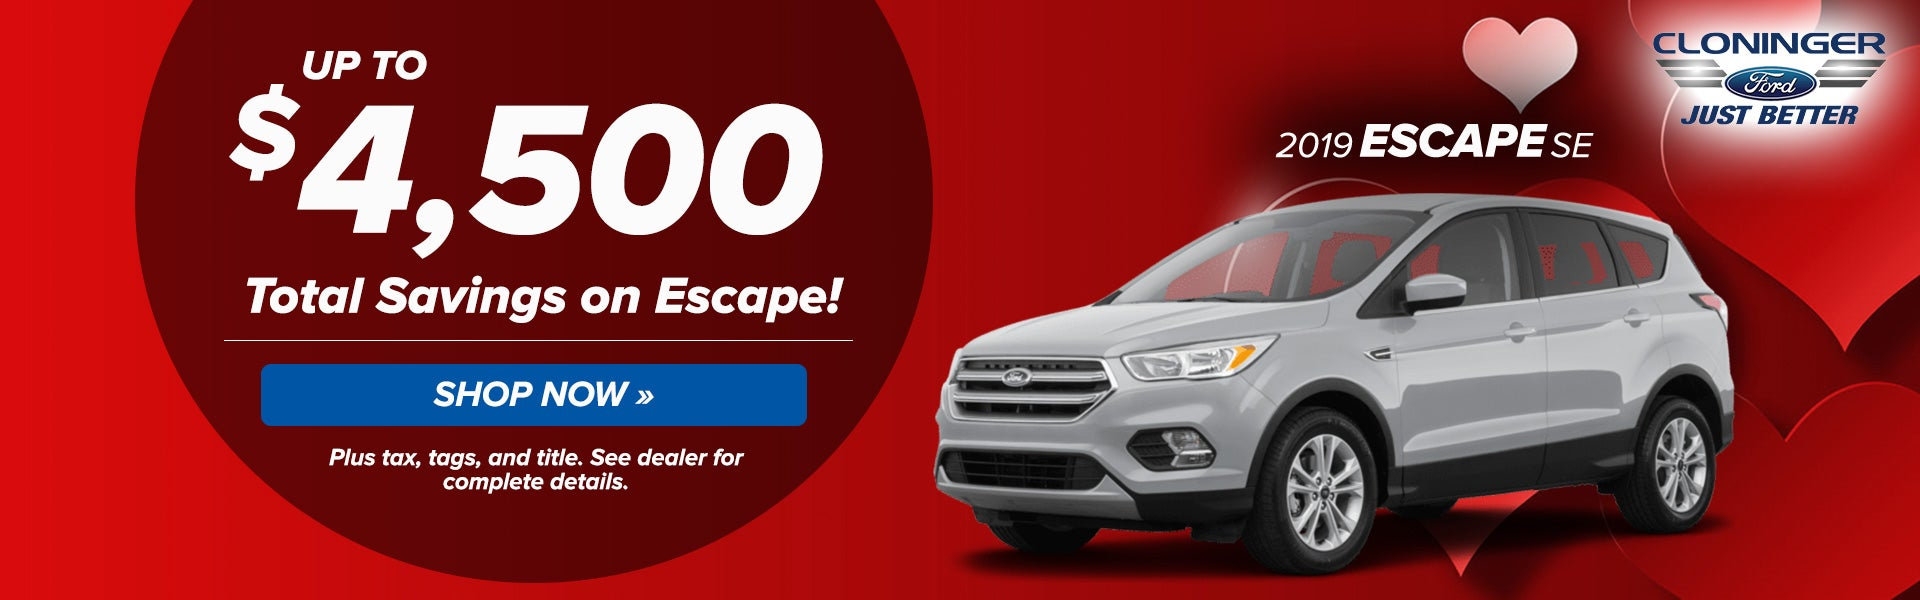 Cloninger Ford Hickory Nc >> 2019 Escape Cloninger Ford Of Hickory Specials Hickory Nc Page 10